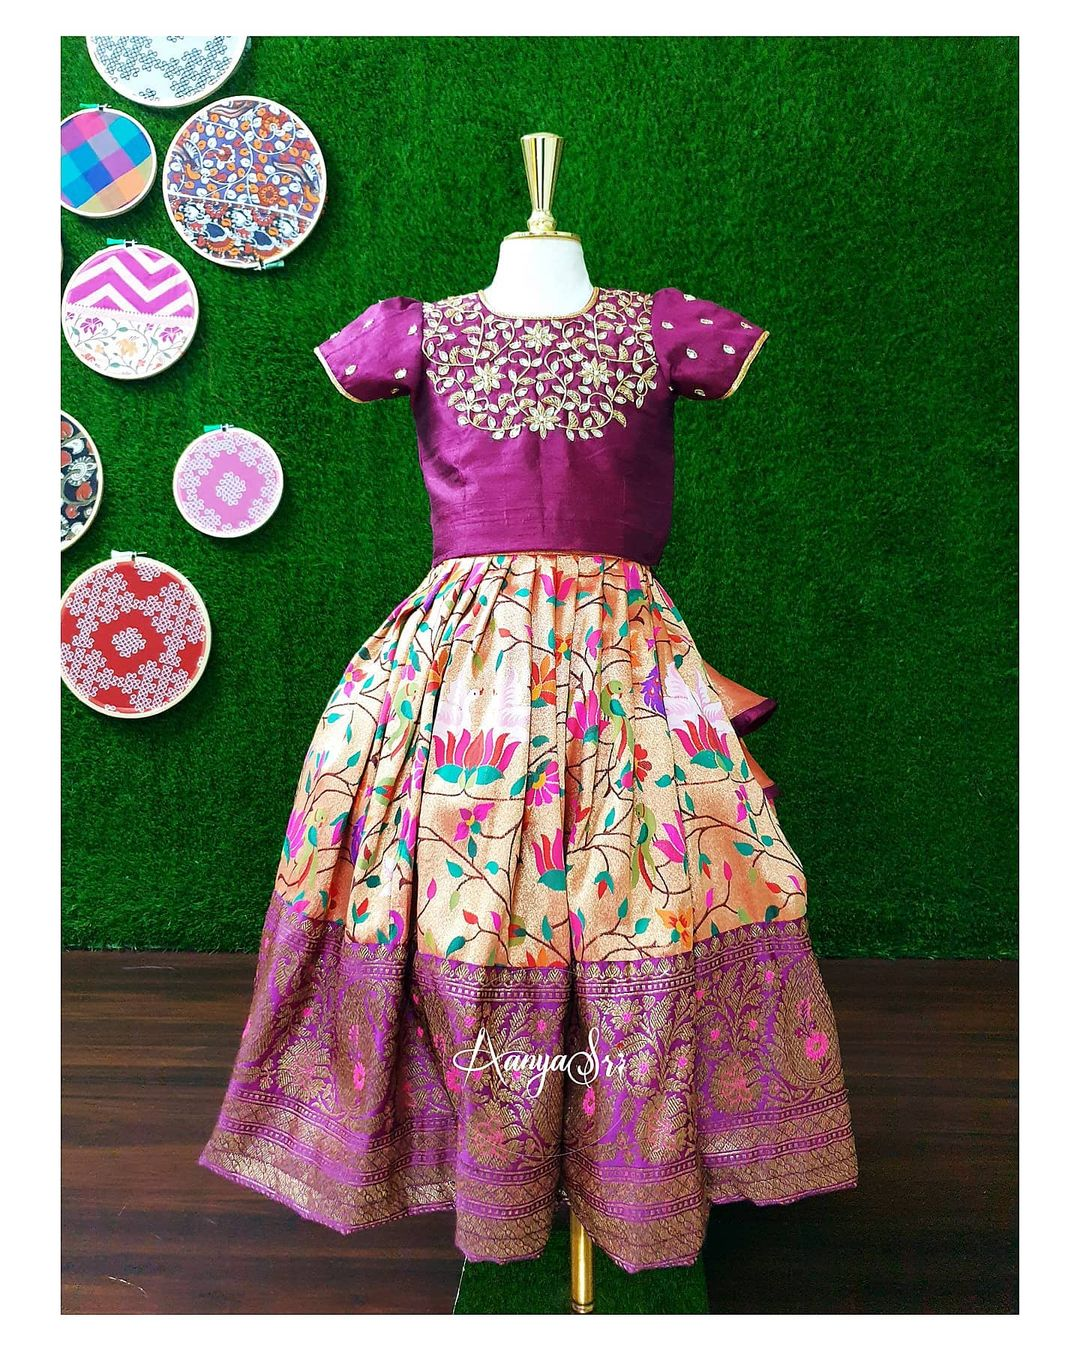 Tamara RS. 5300 – RS. 6700/- Purple lotus design paithani pavada with intricate hand embroidery and a rich traditional border. 2021-06-07